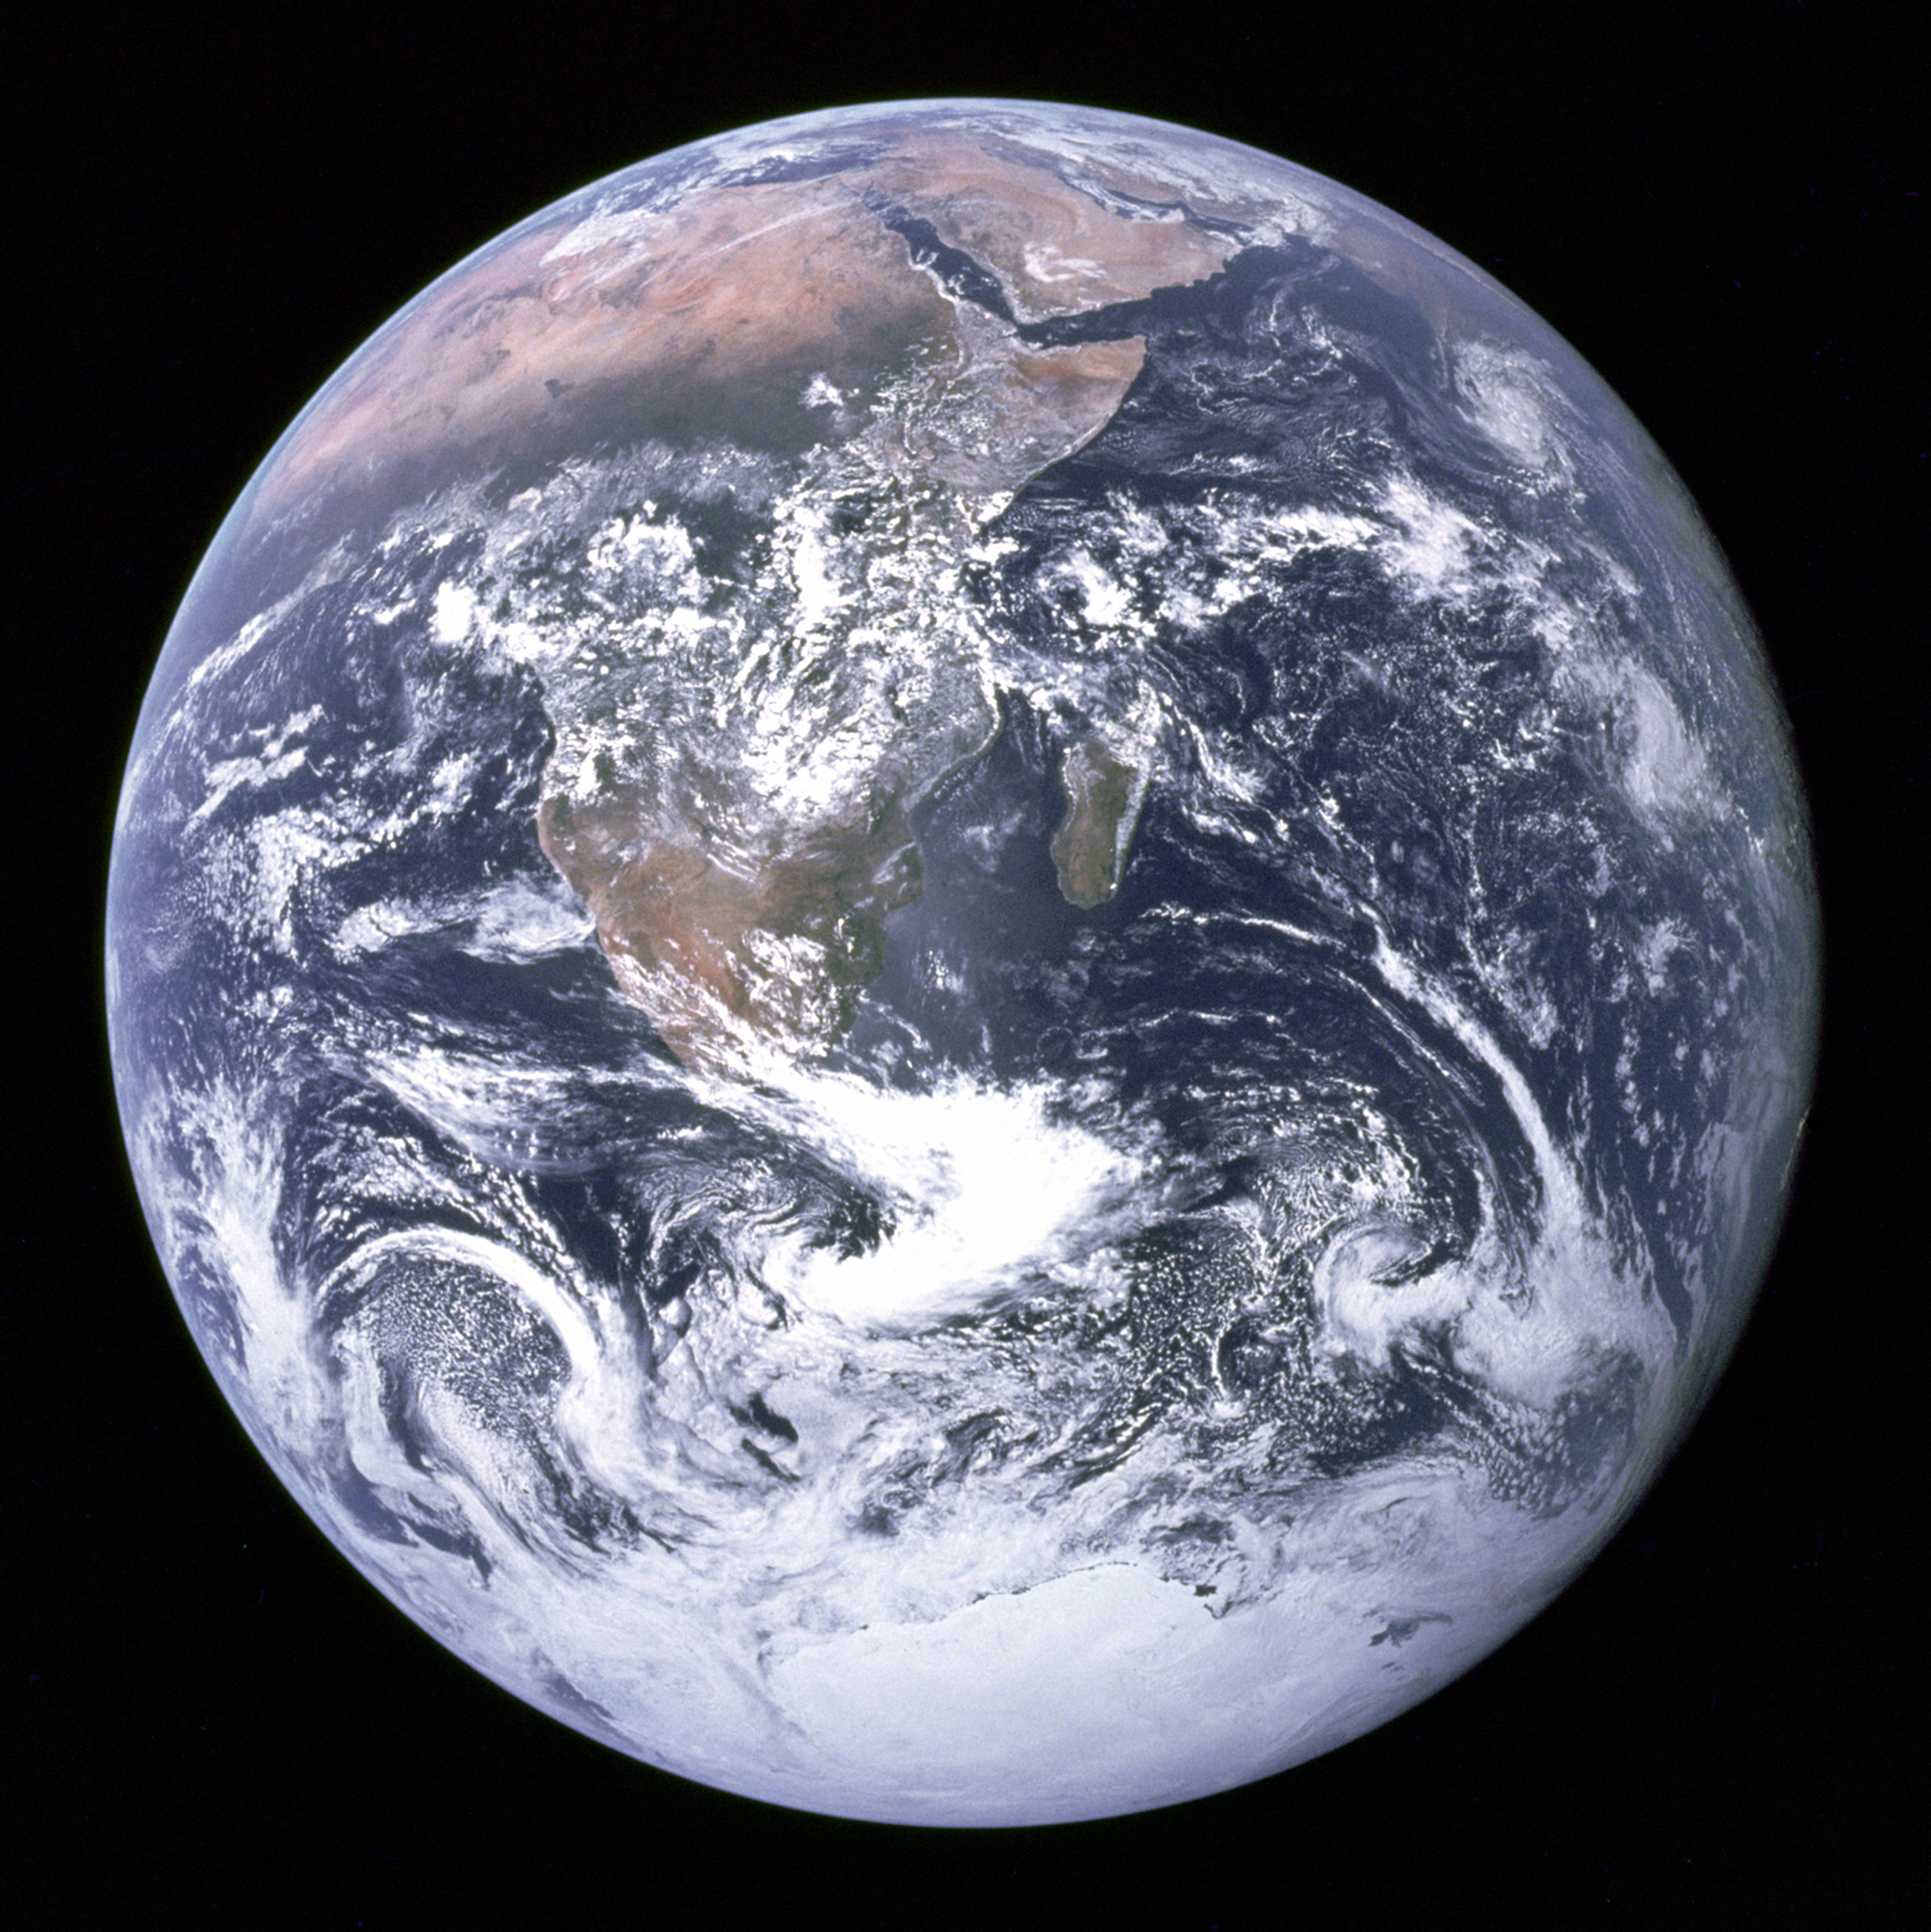 blue marble image of the earth from apollo 17 nasa